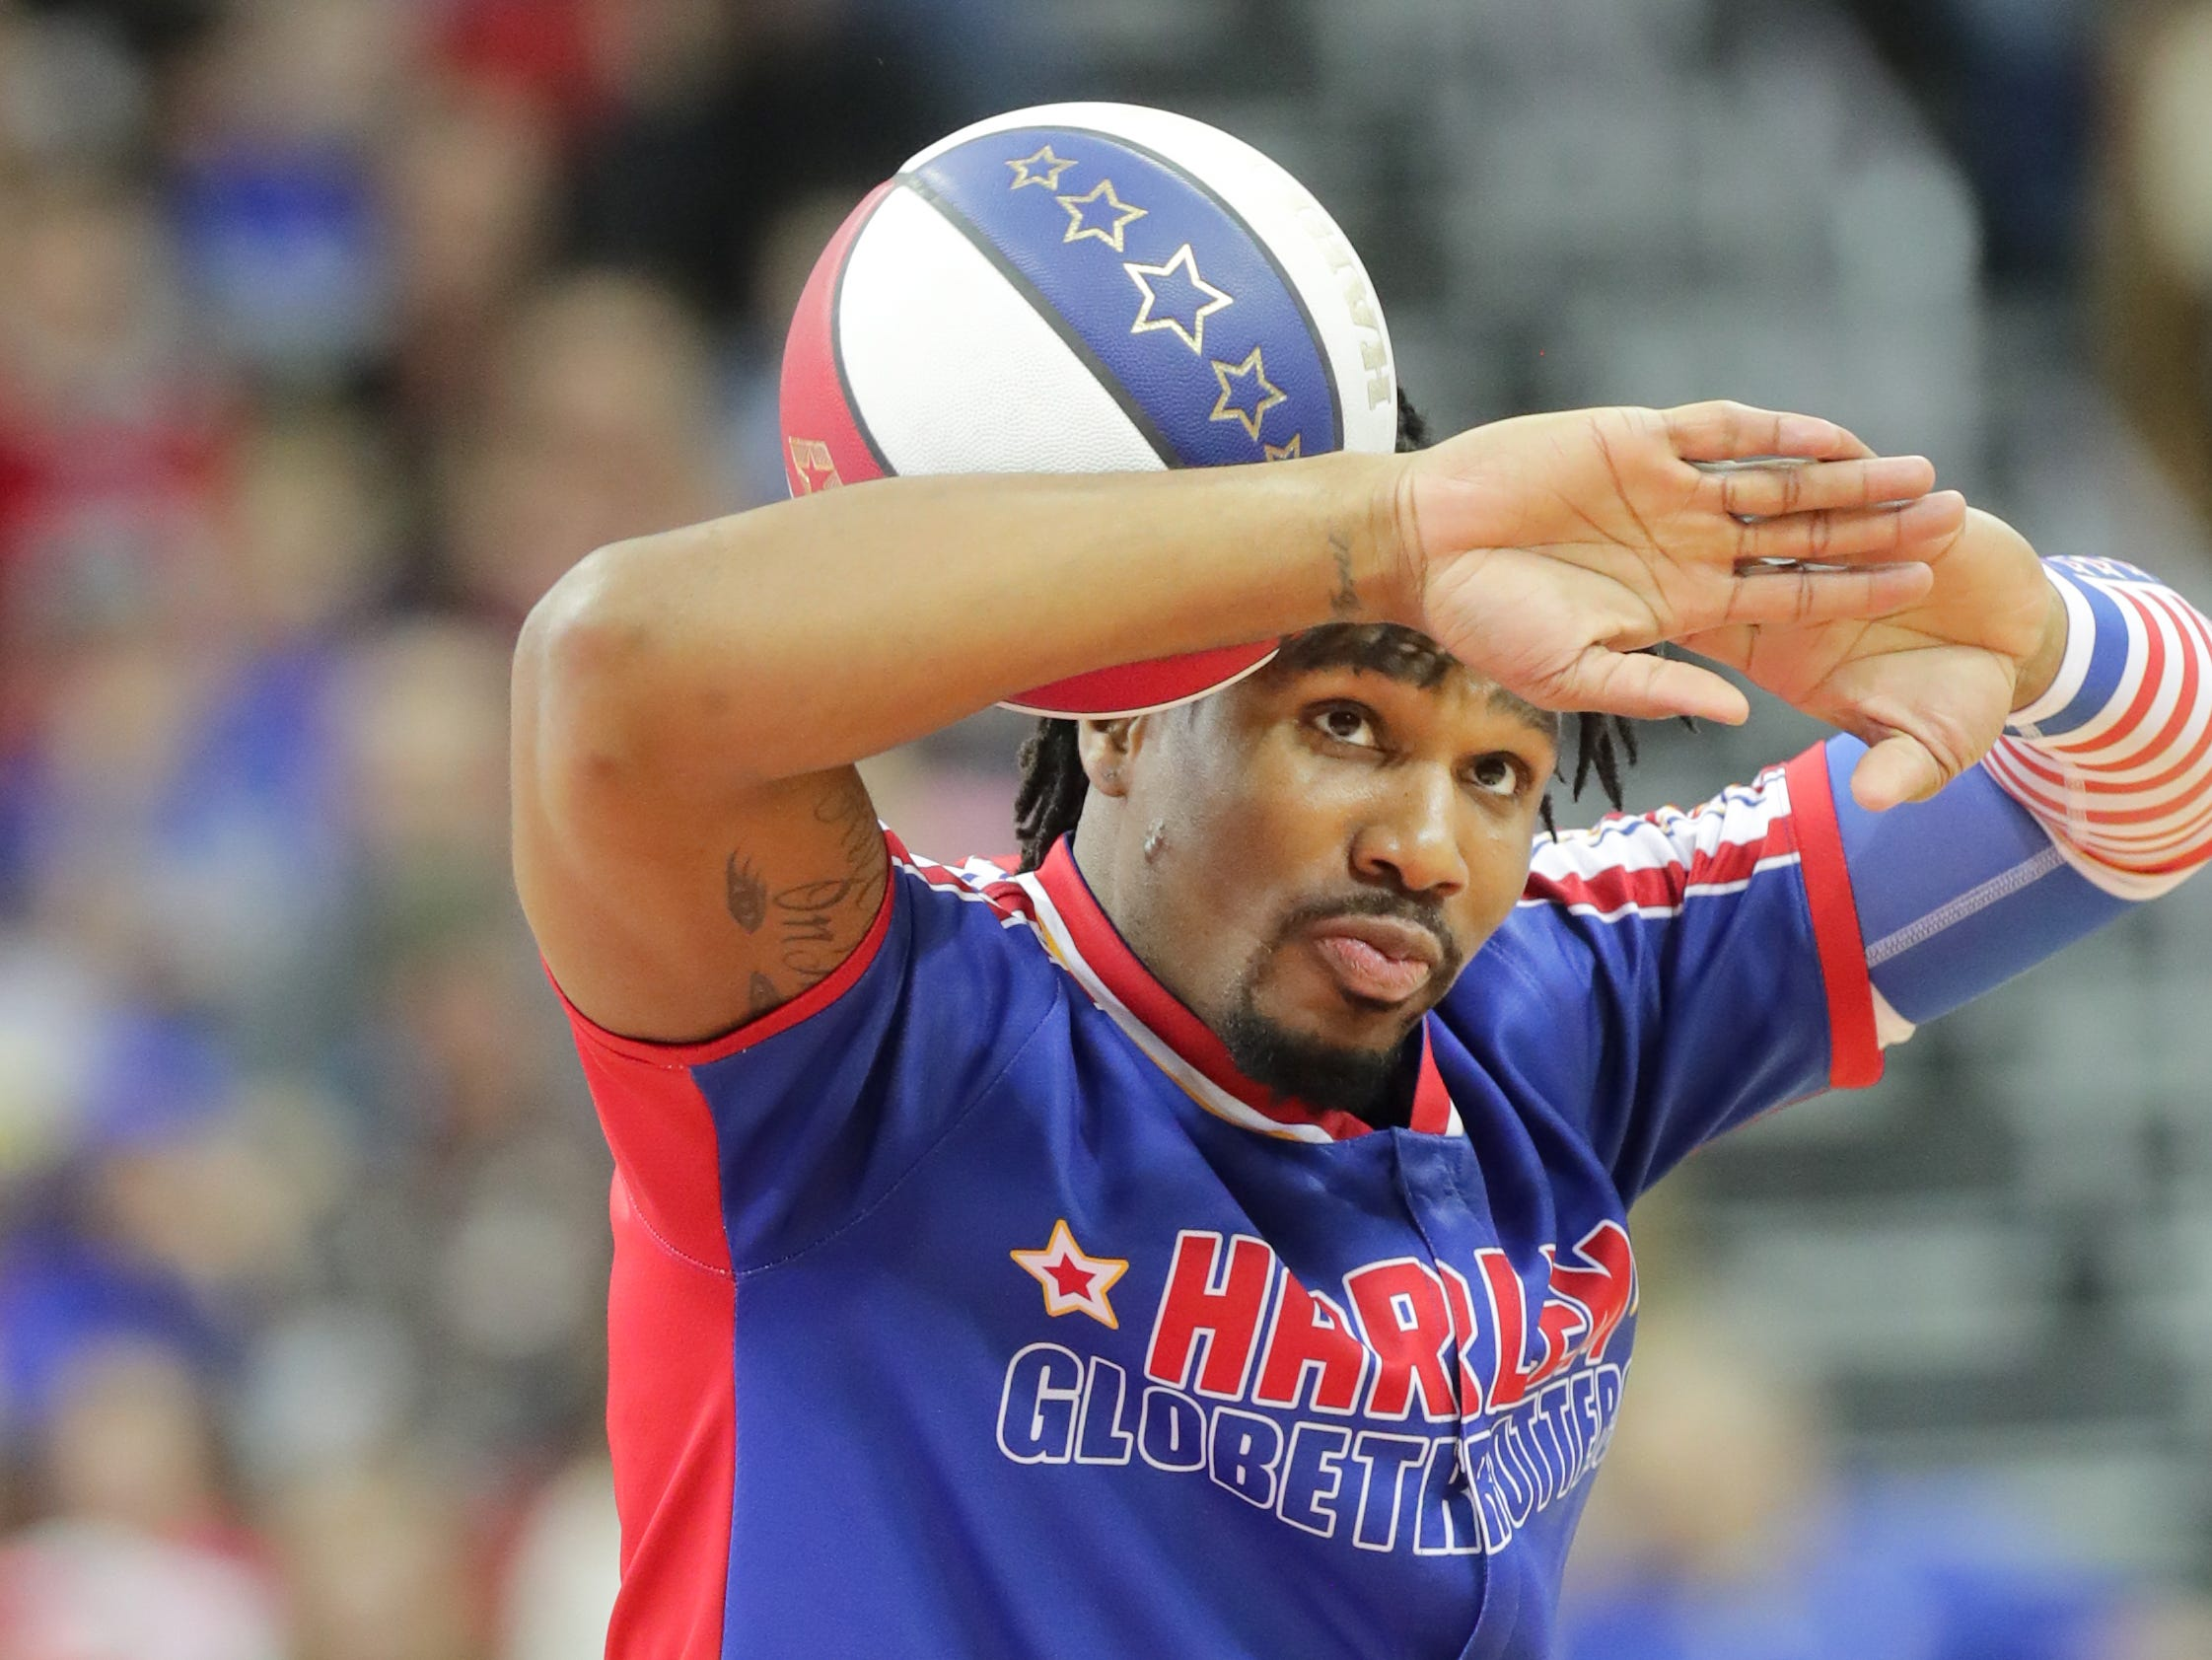 Harlem Globetrotters' Thunder entertains the crowd with his ball control before the game.